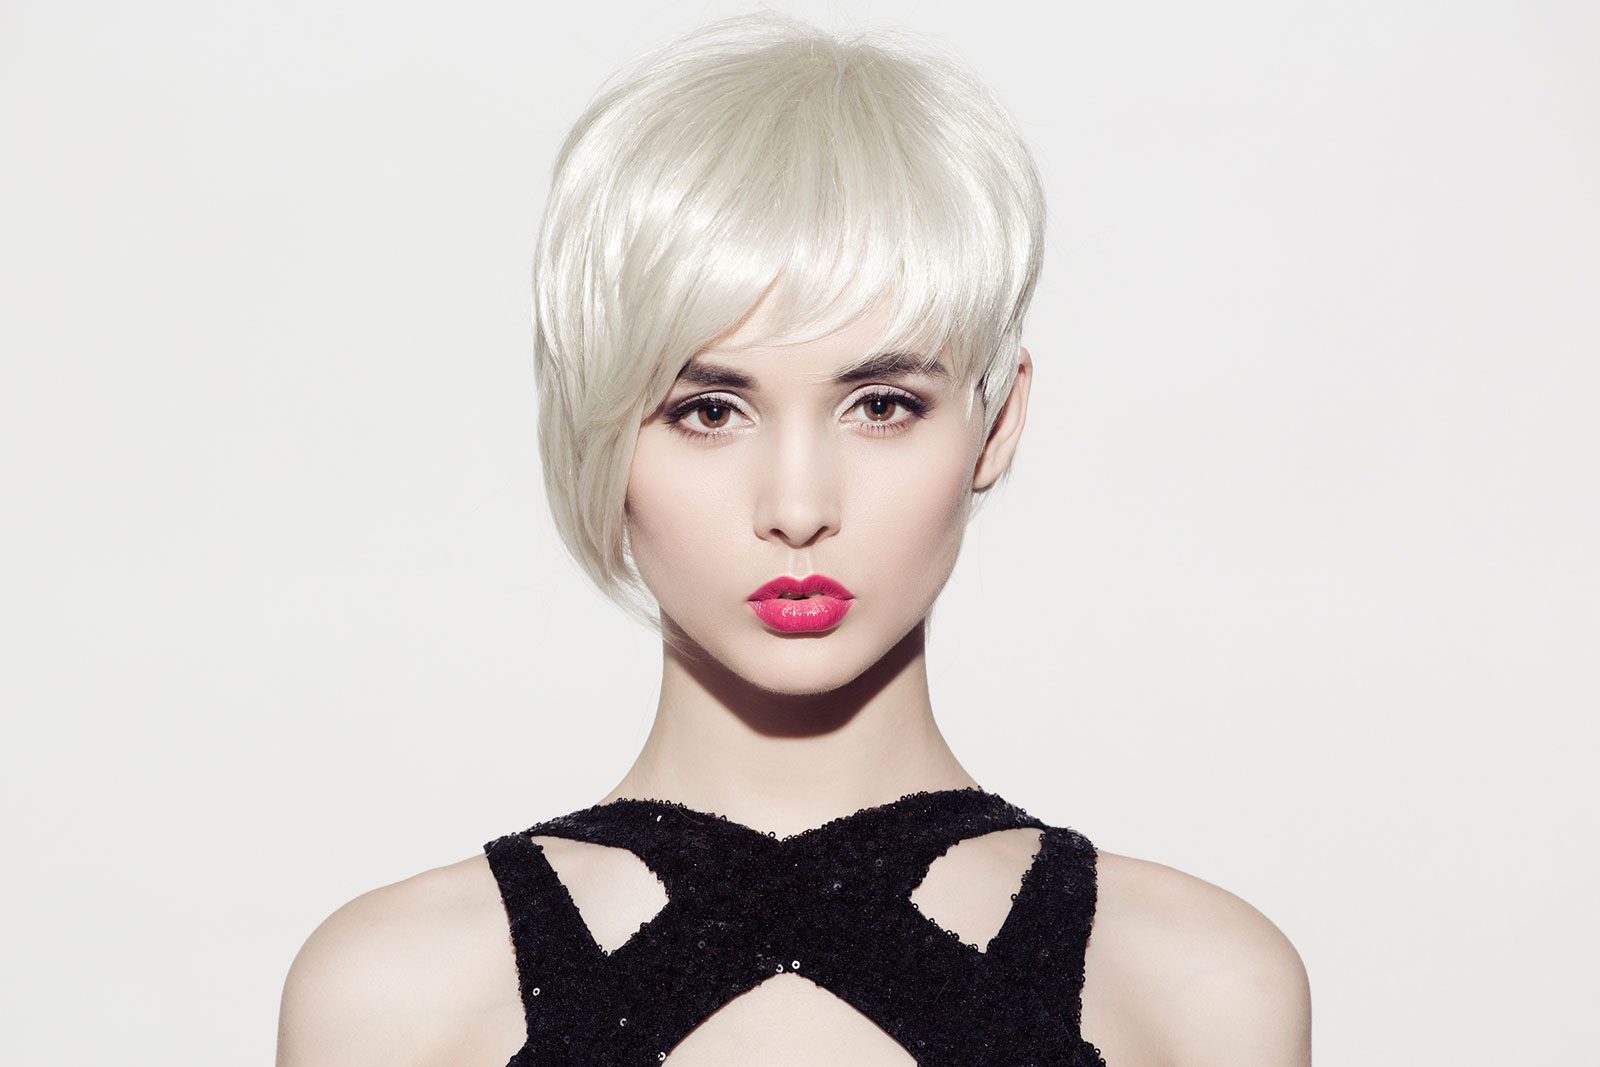 Asymmetric ice blonde textured short bob haircut